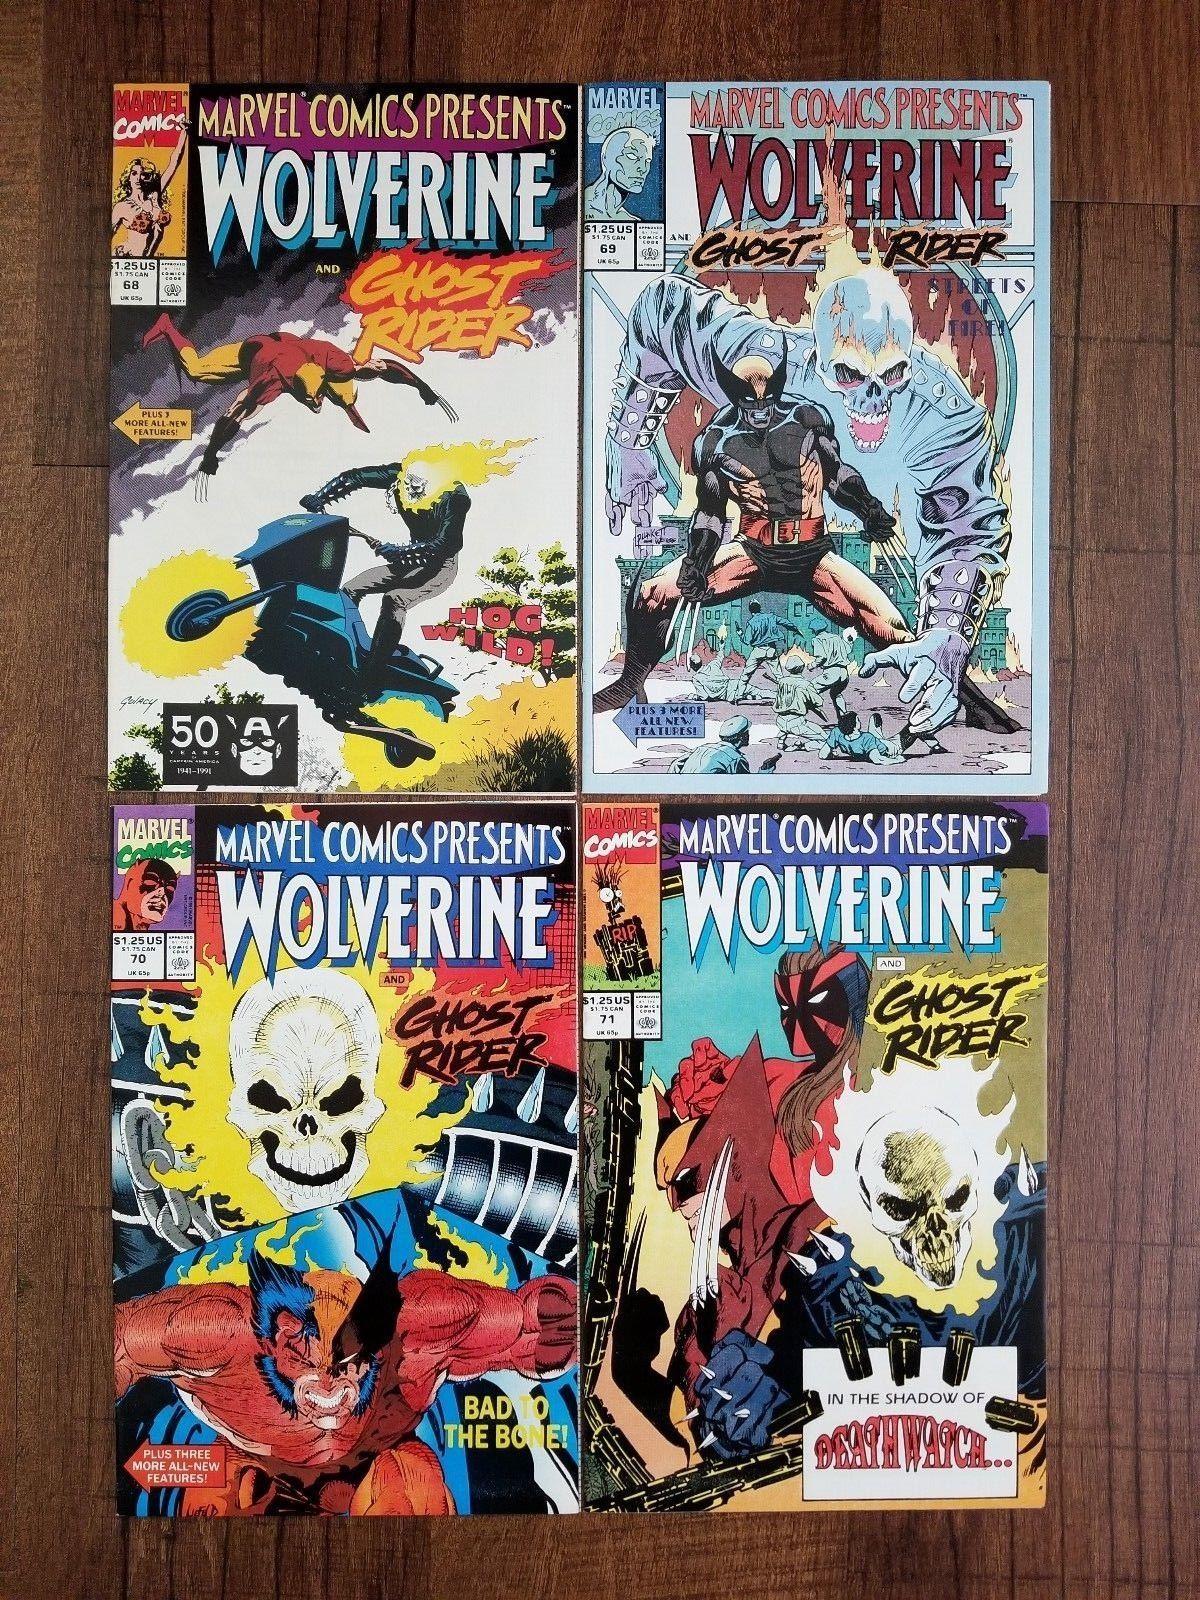 Marvel Comics Presents Wolverine And Ghost Rider #68 #69 #70